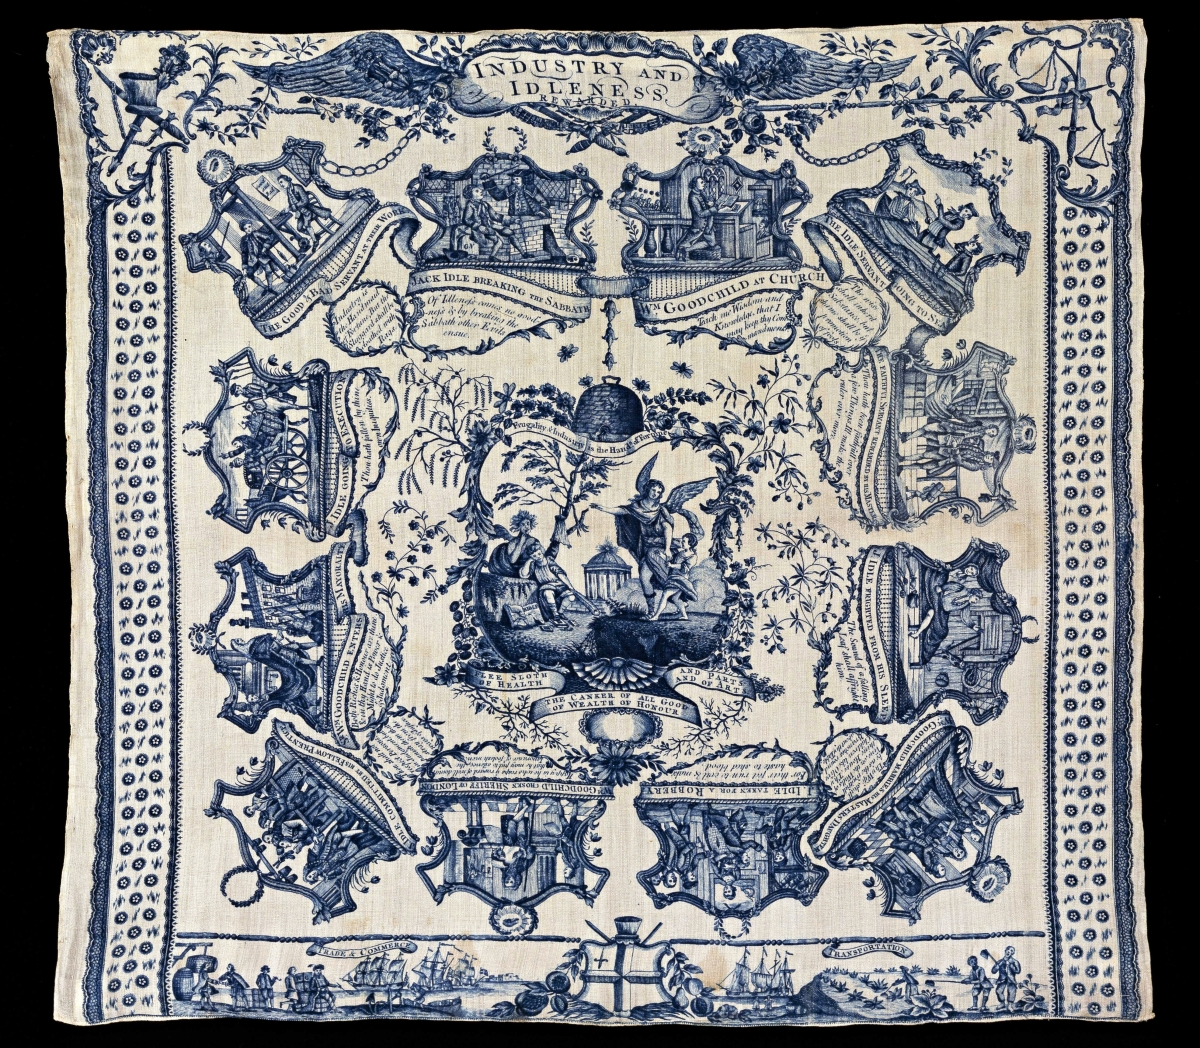 "Printed handkerchiefs and banners often carried moral or political messages. Made in England, circa 1775, this copperplate-printed linen handkerchief with China blue is covered with visual and verbal lessons on ""Industry and Idleness."""